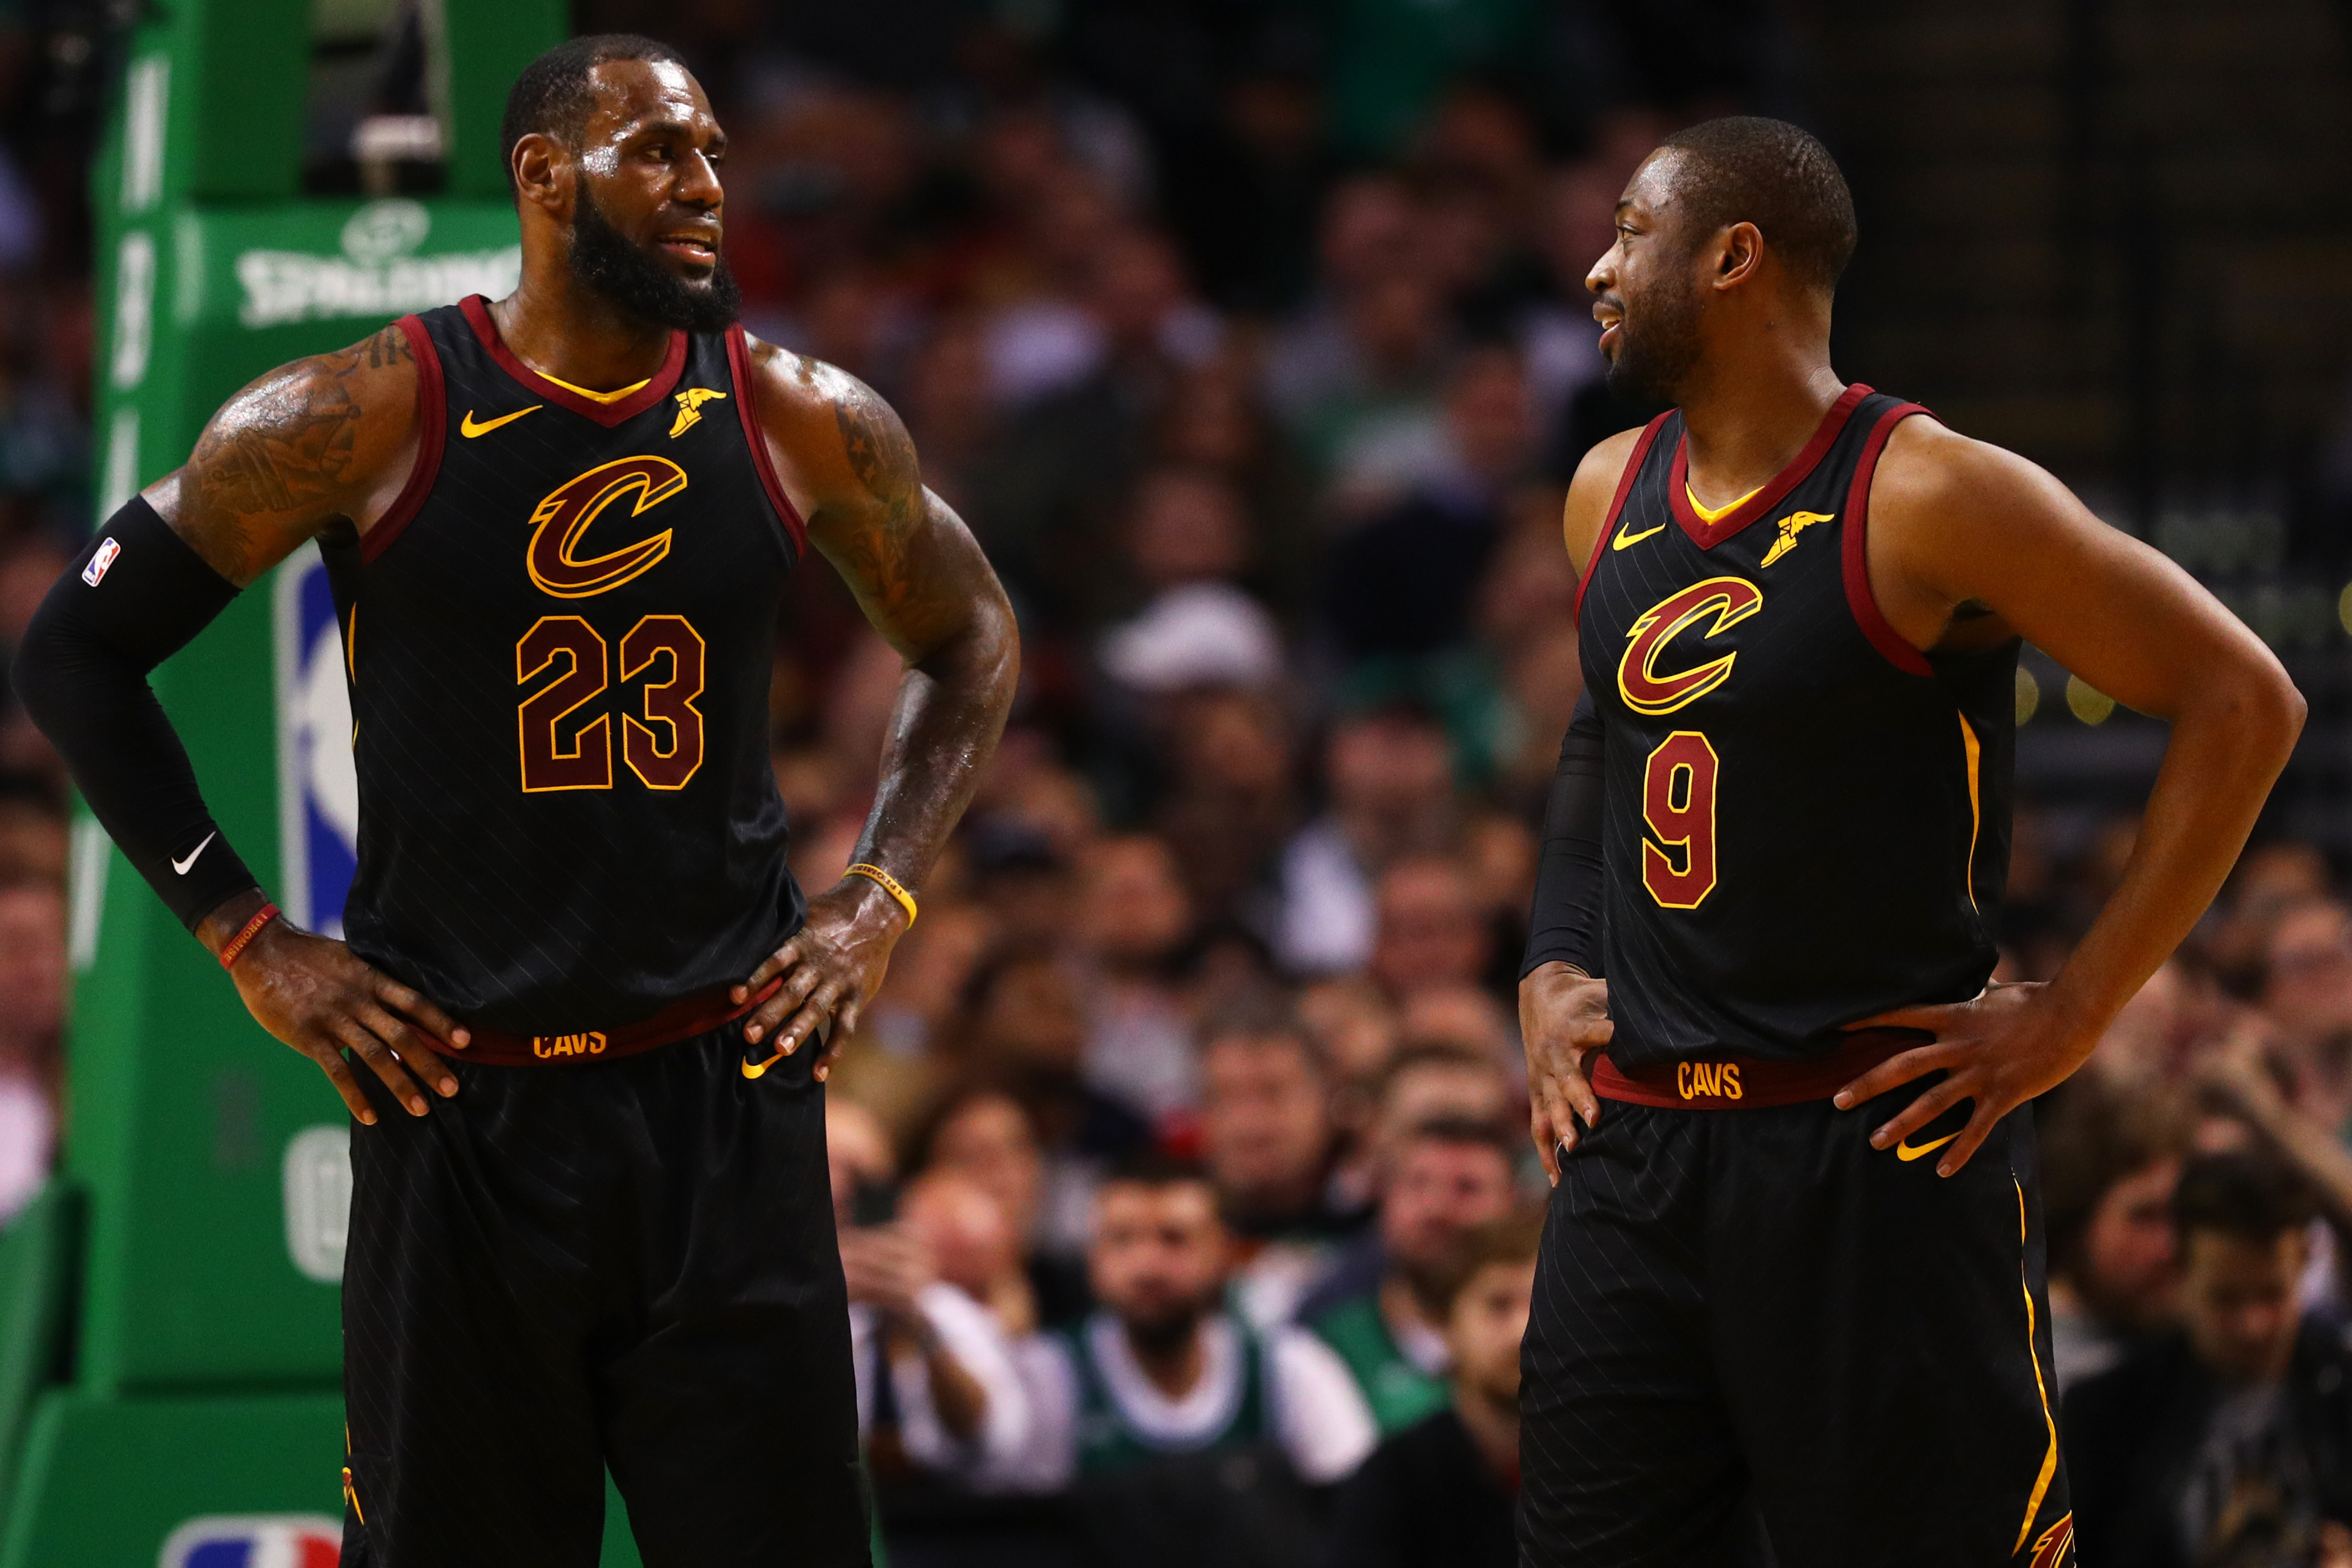 Only 3 days until the event. 2018 NBA Power Rankings: It's time to sell on the